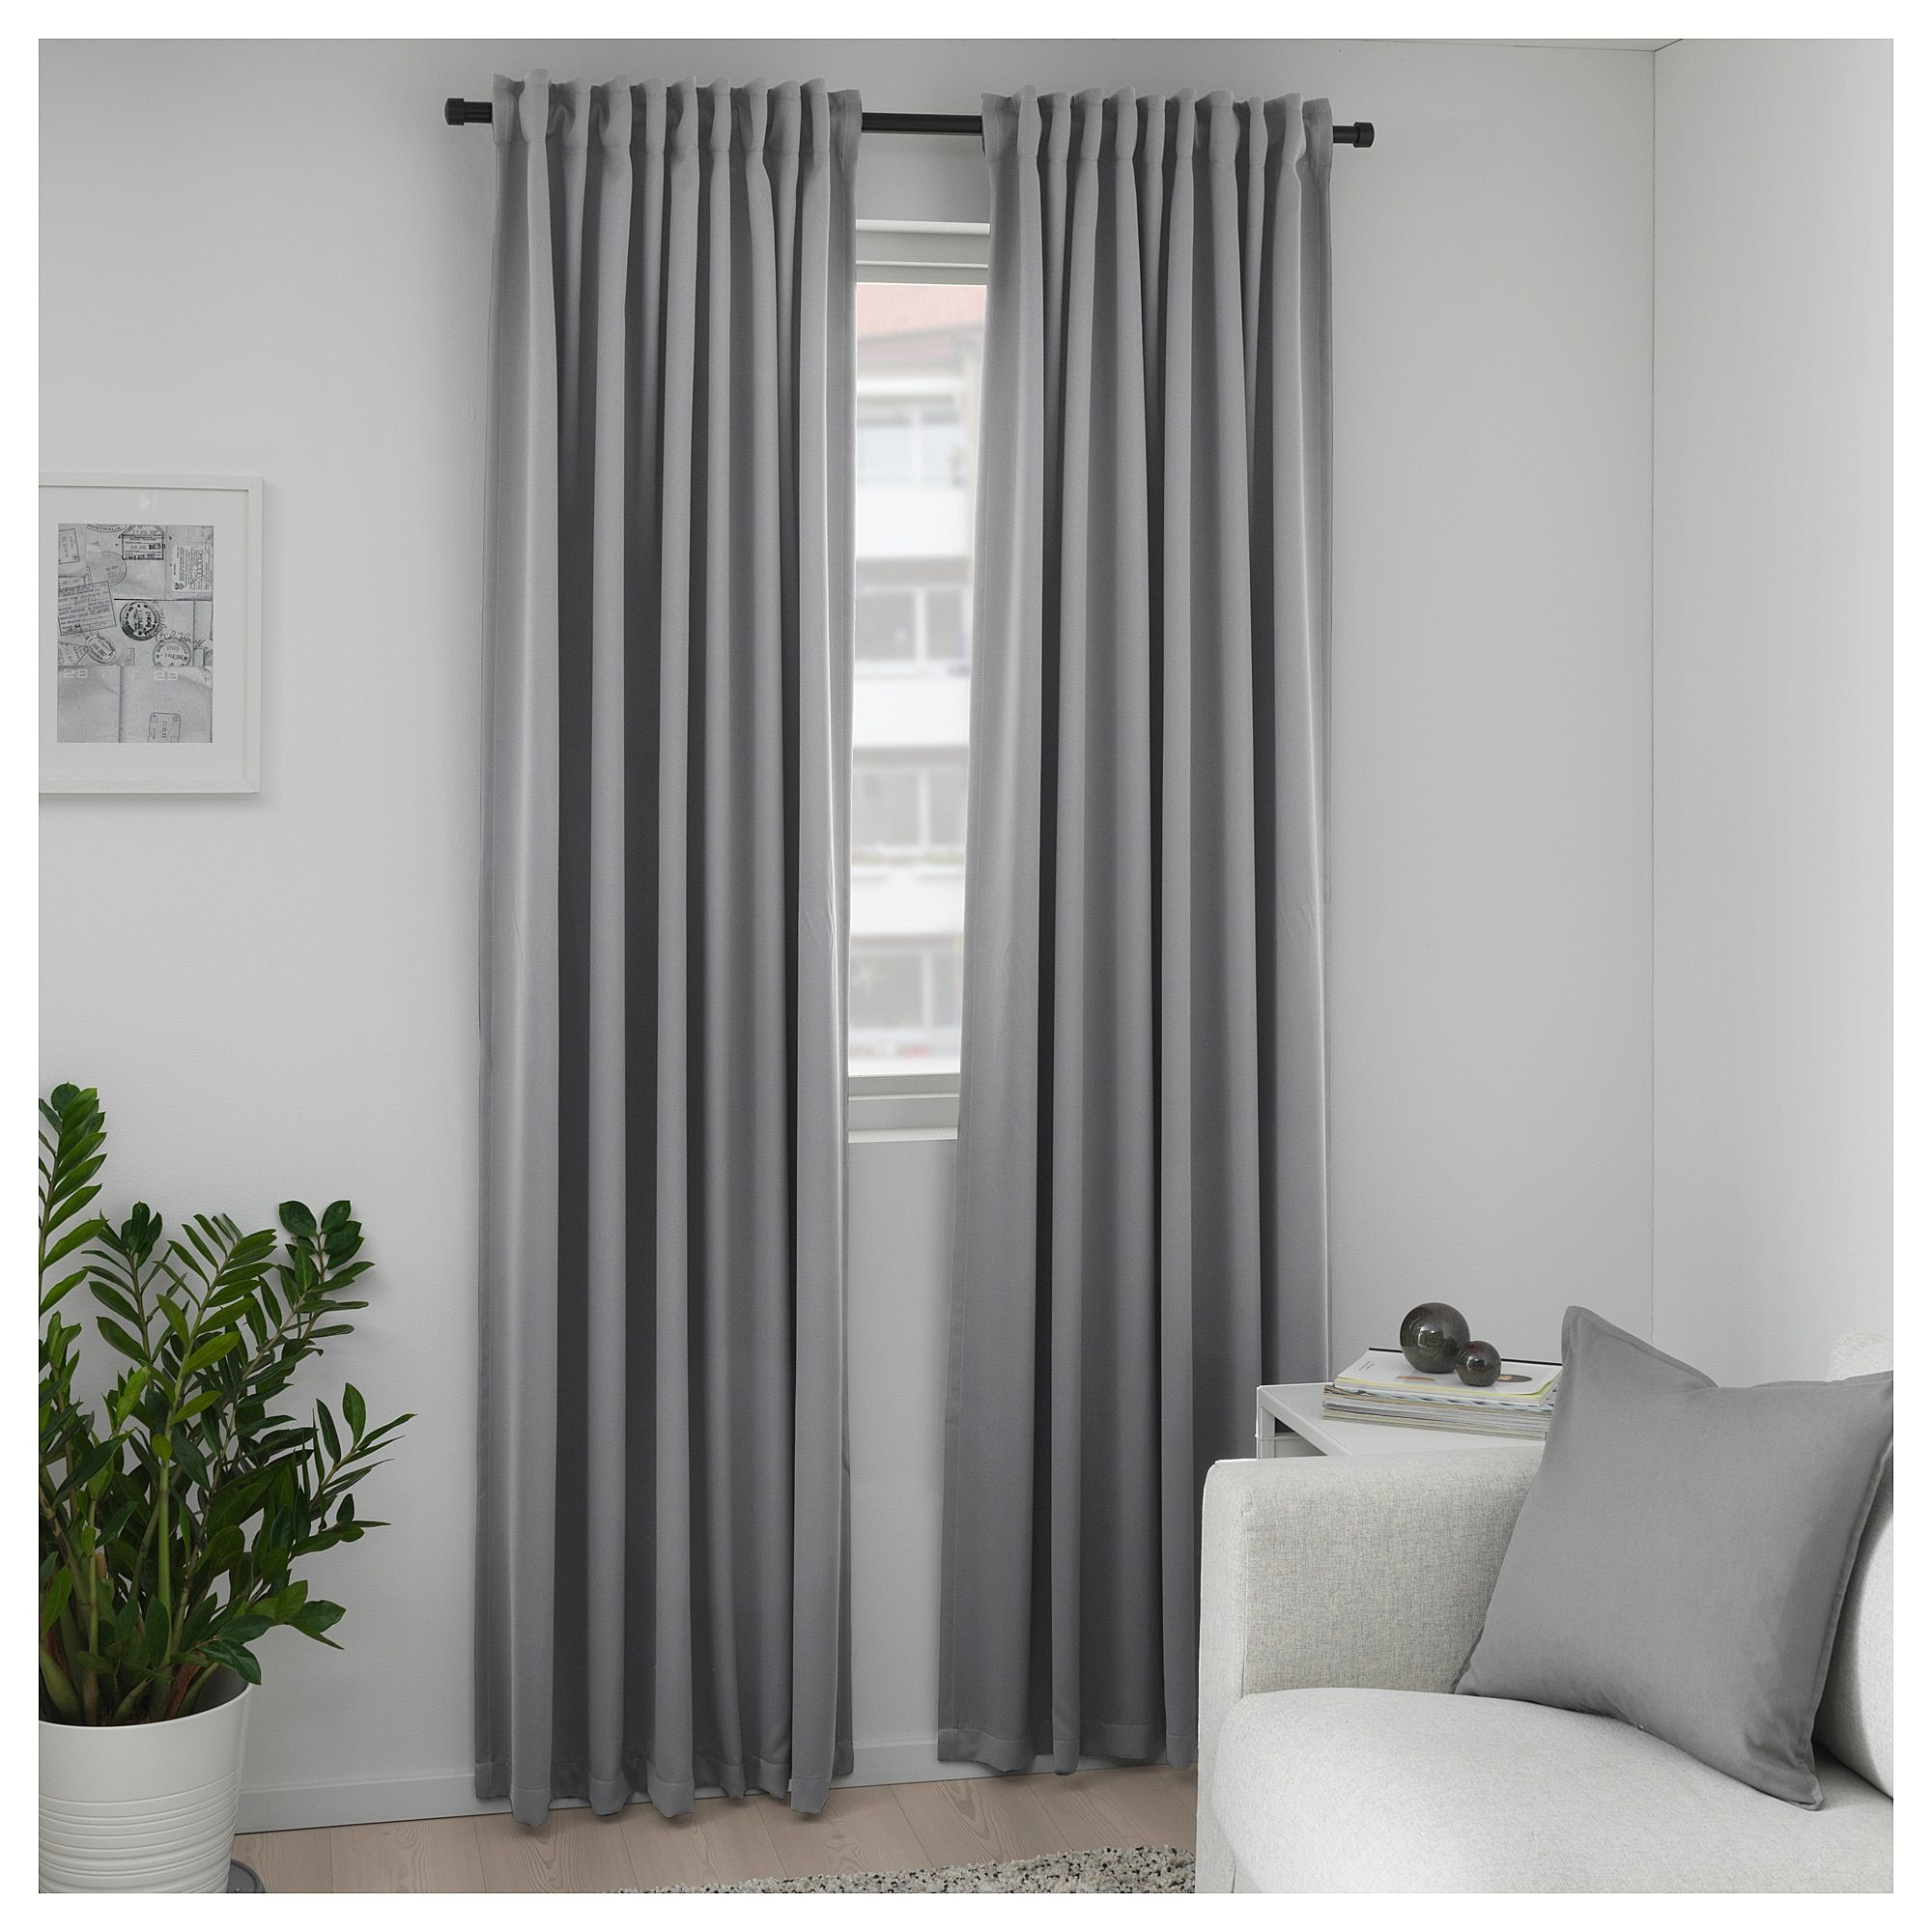 Majgull Blackout Curtains 1 Pair Gray In 2019 Room